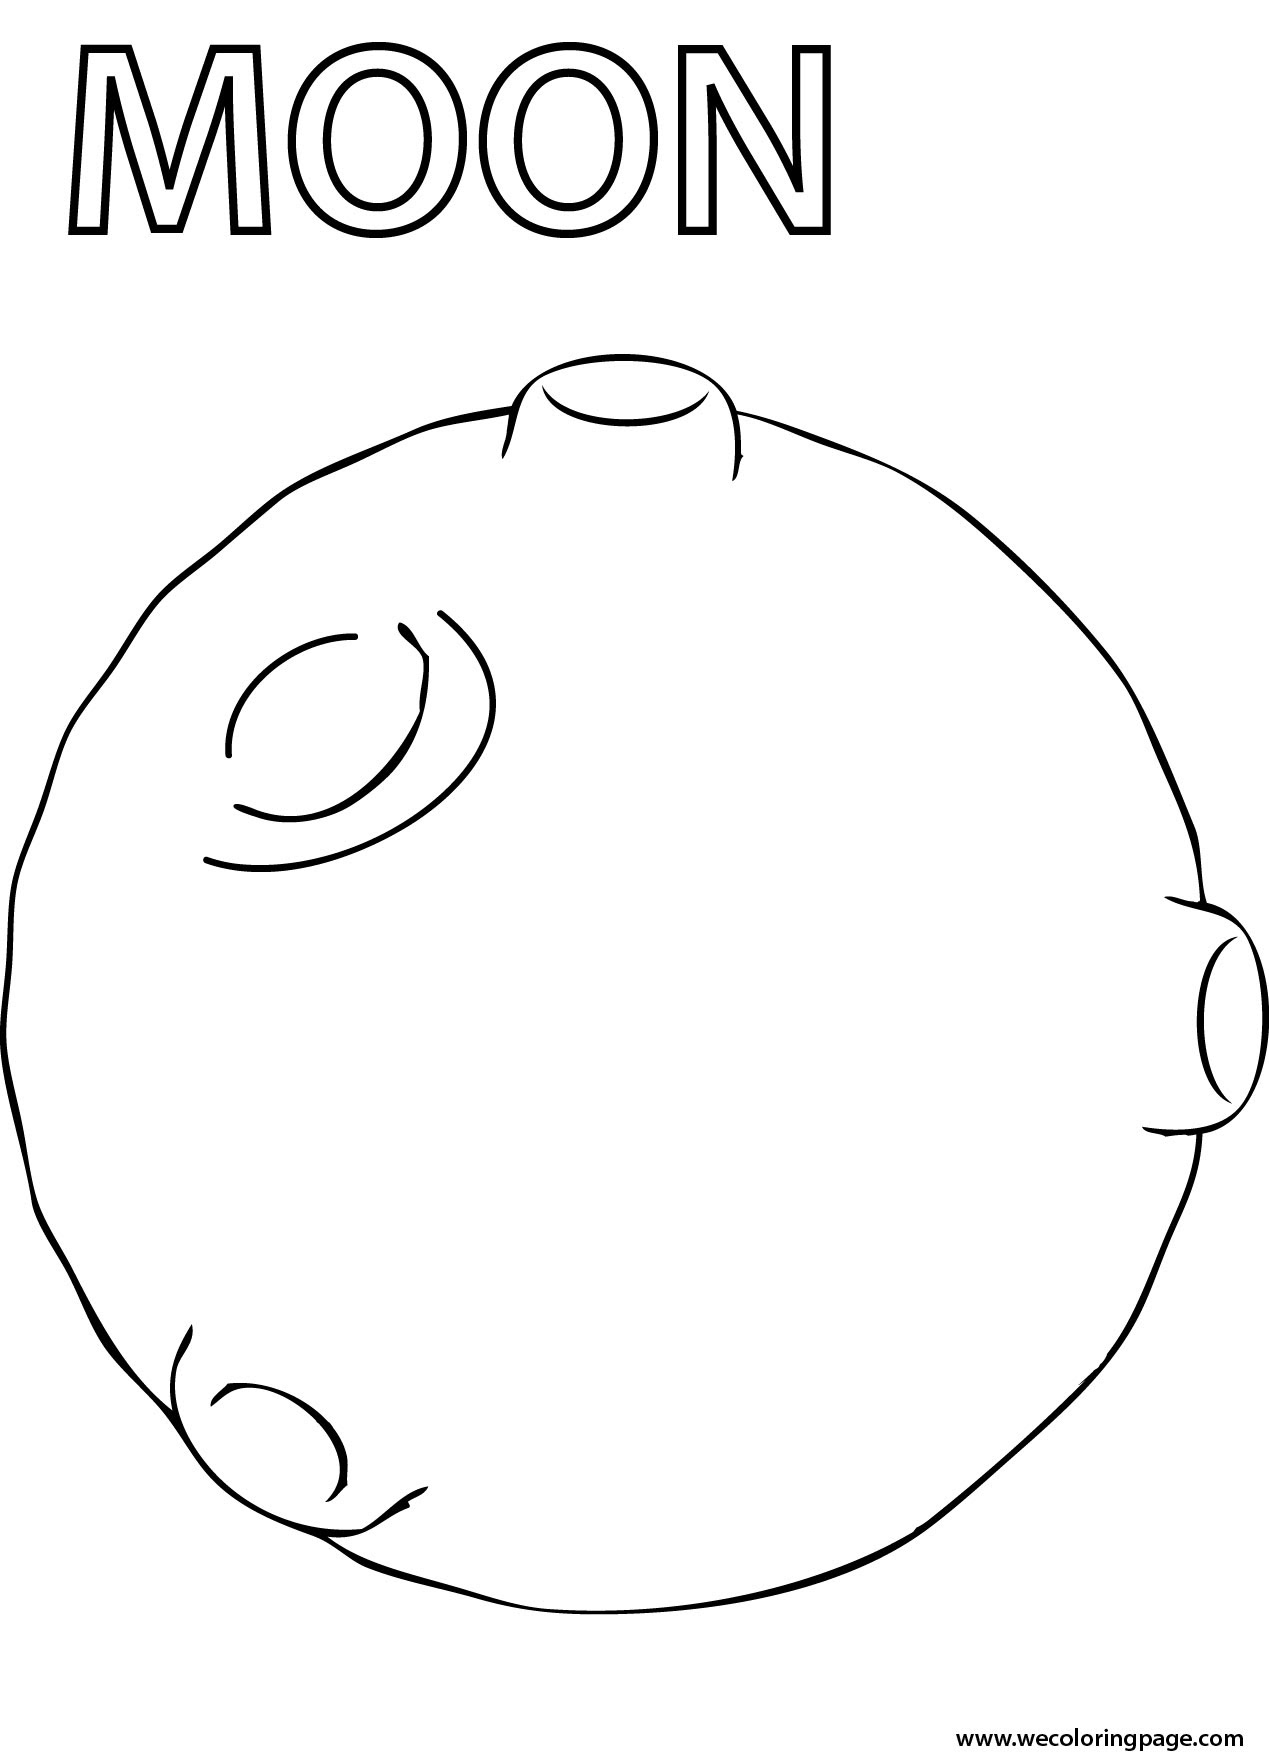 Moon Phases Coloring Pages - jeffersonclan